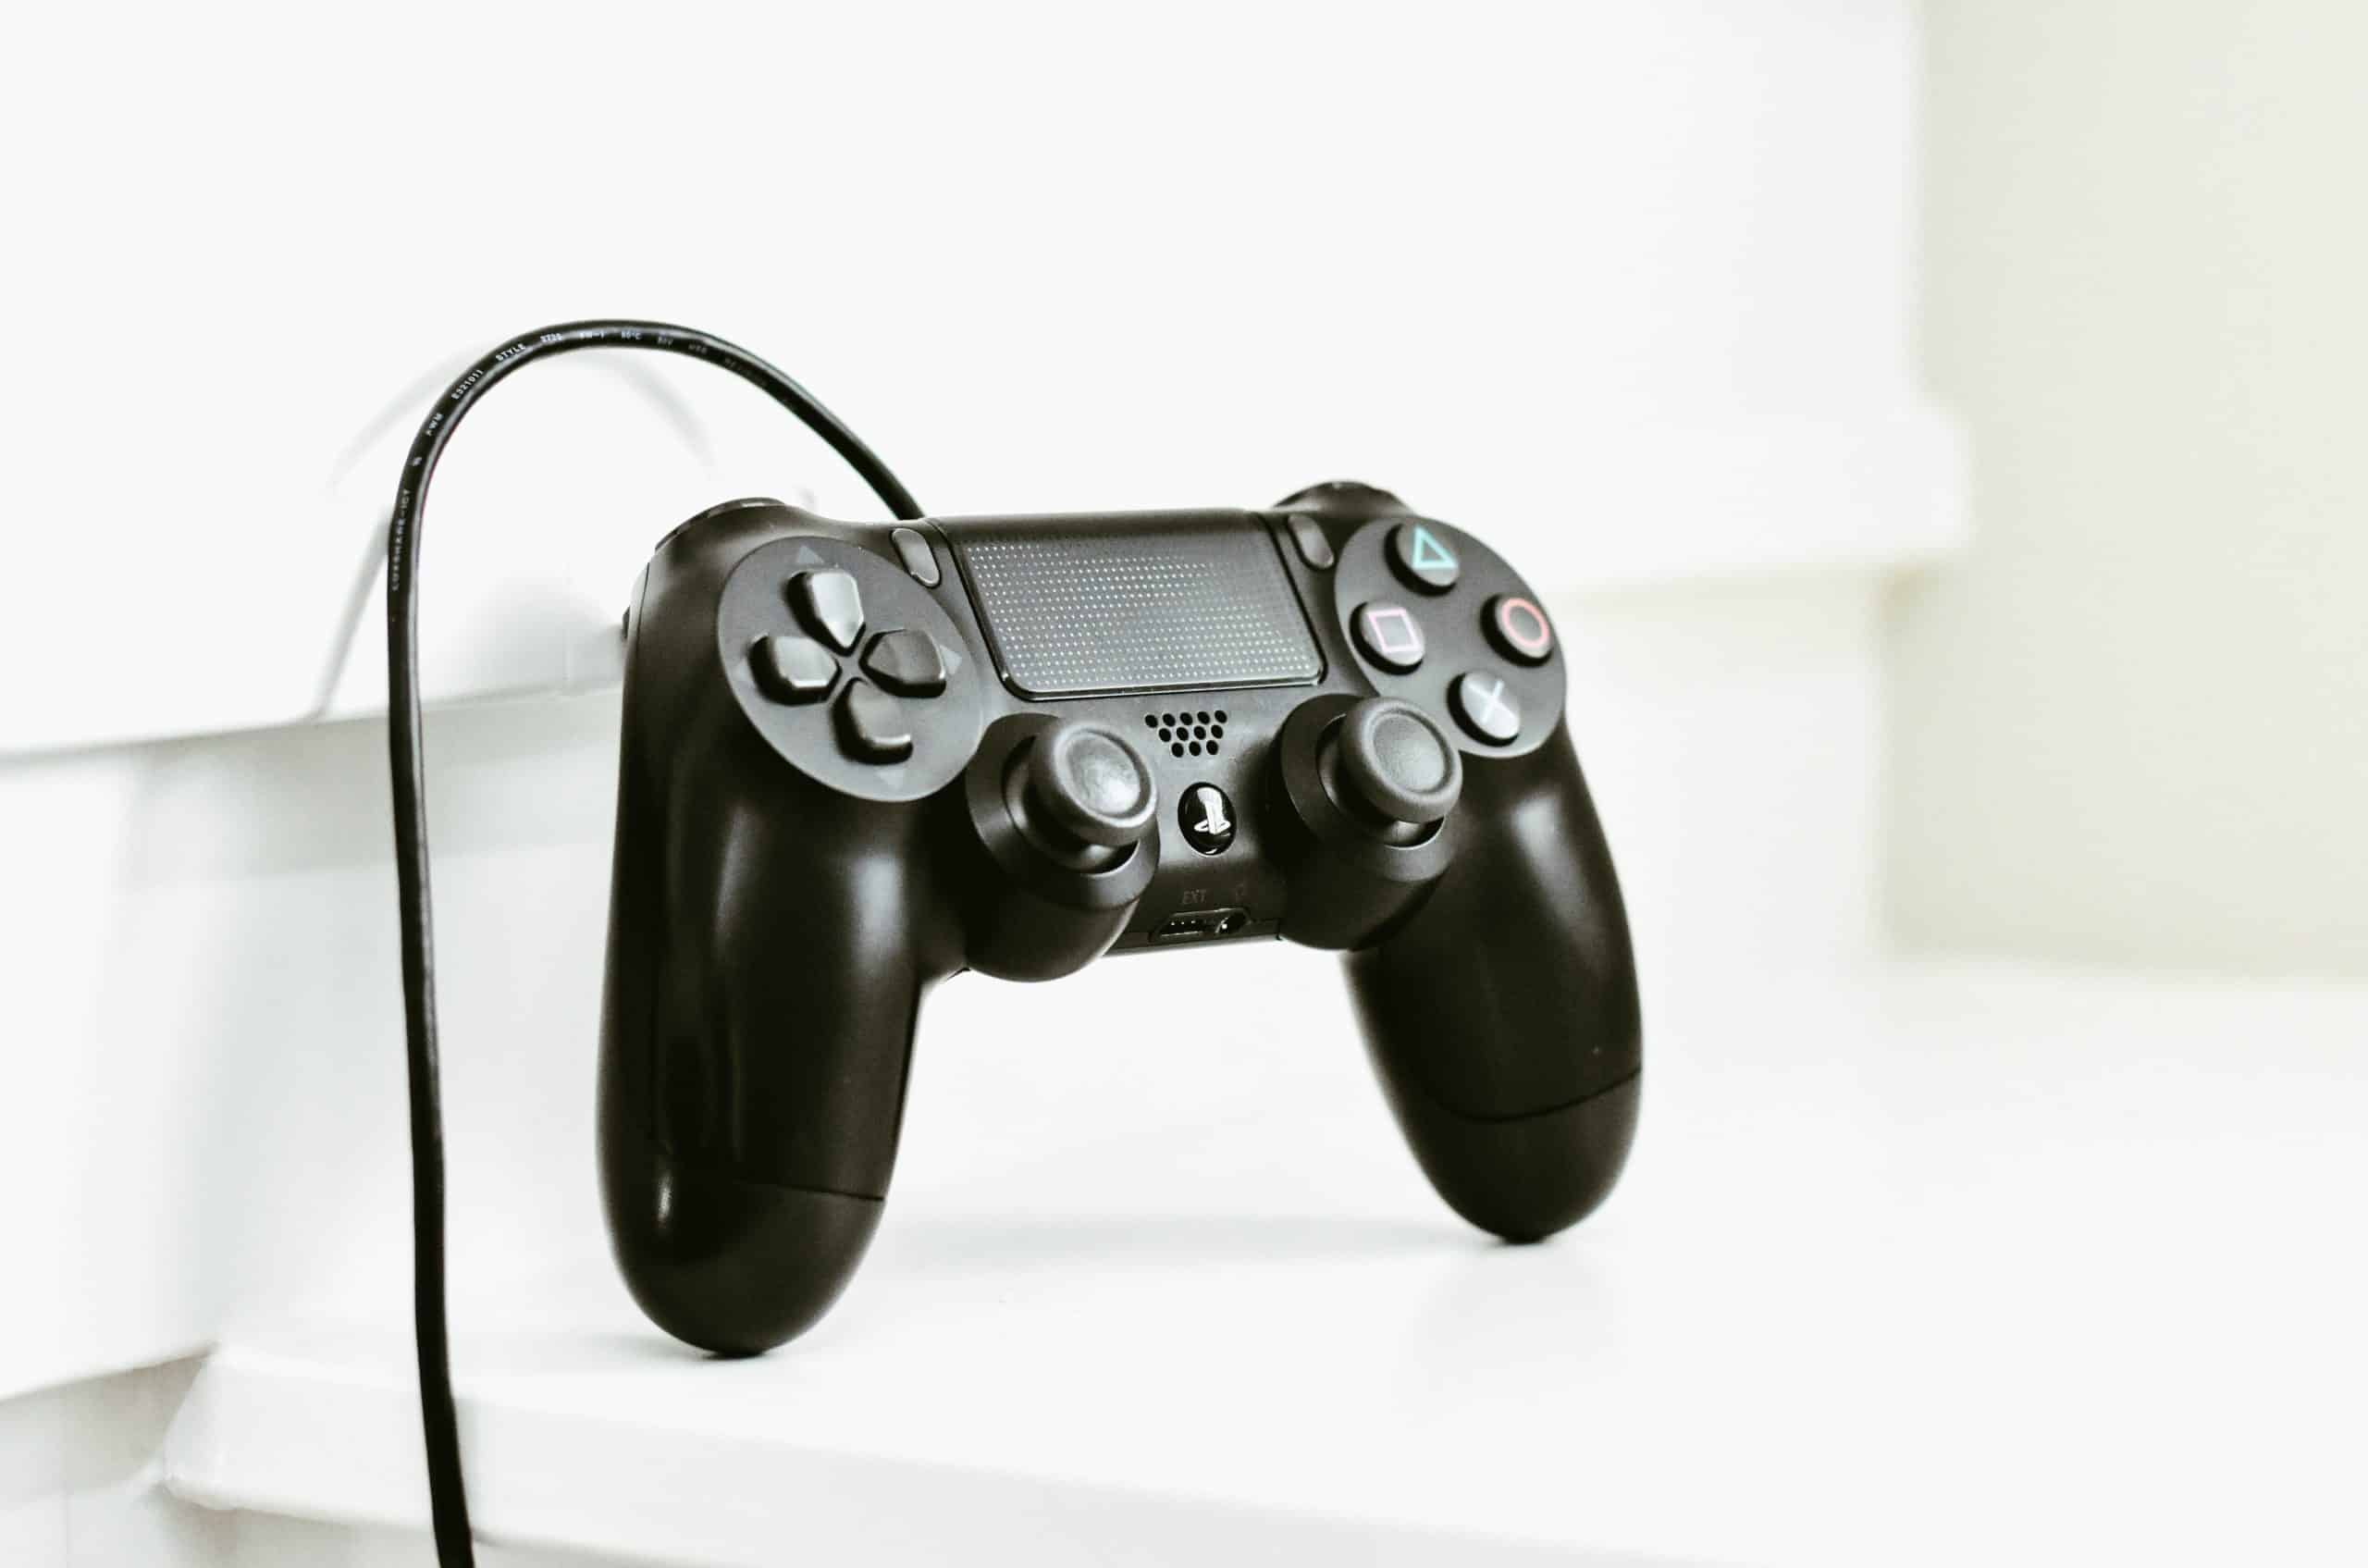 PS4 Hacks That You Can Use - Charge Your DualShock Using A Phone Charger